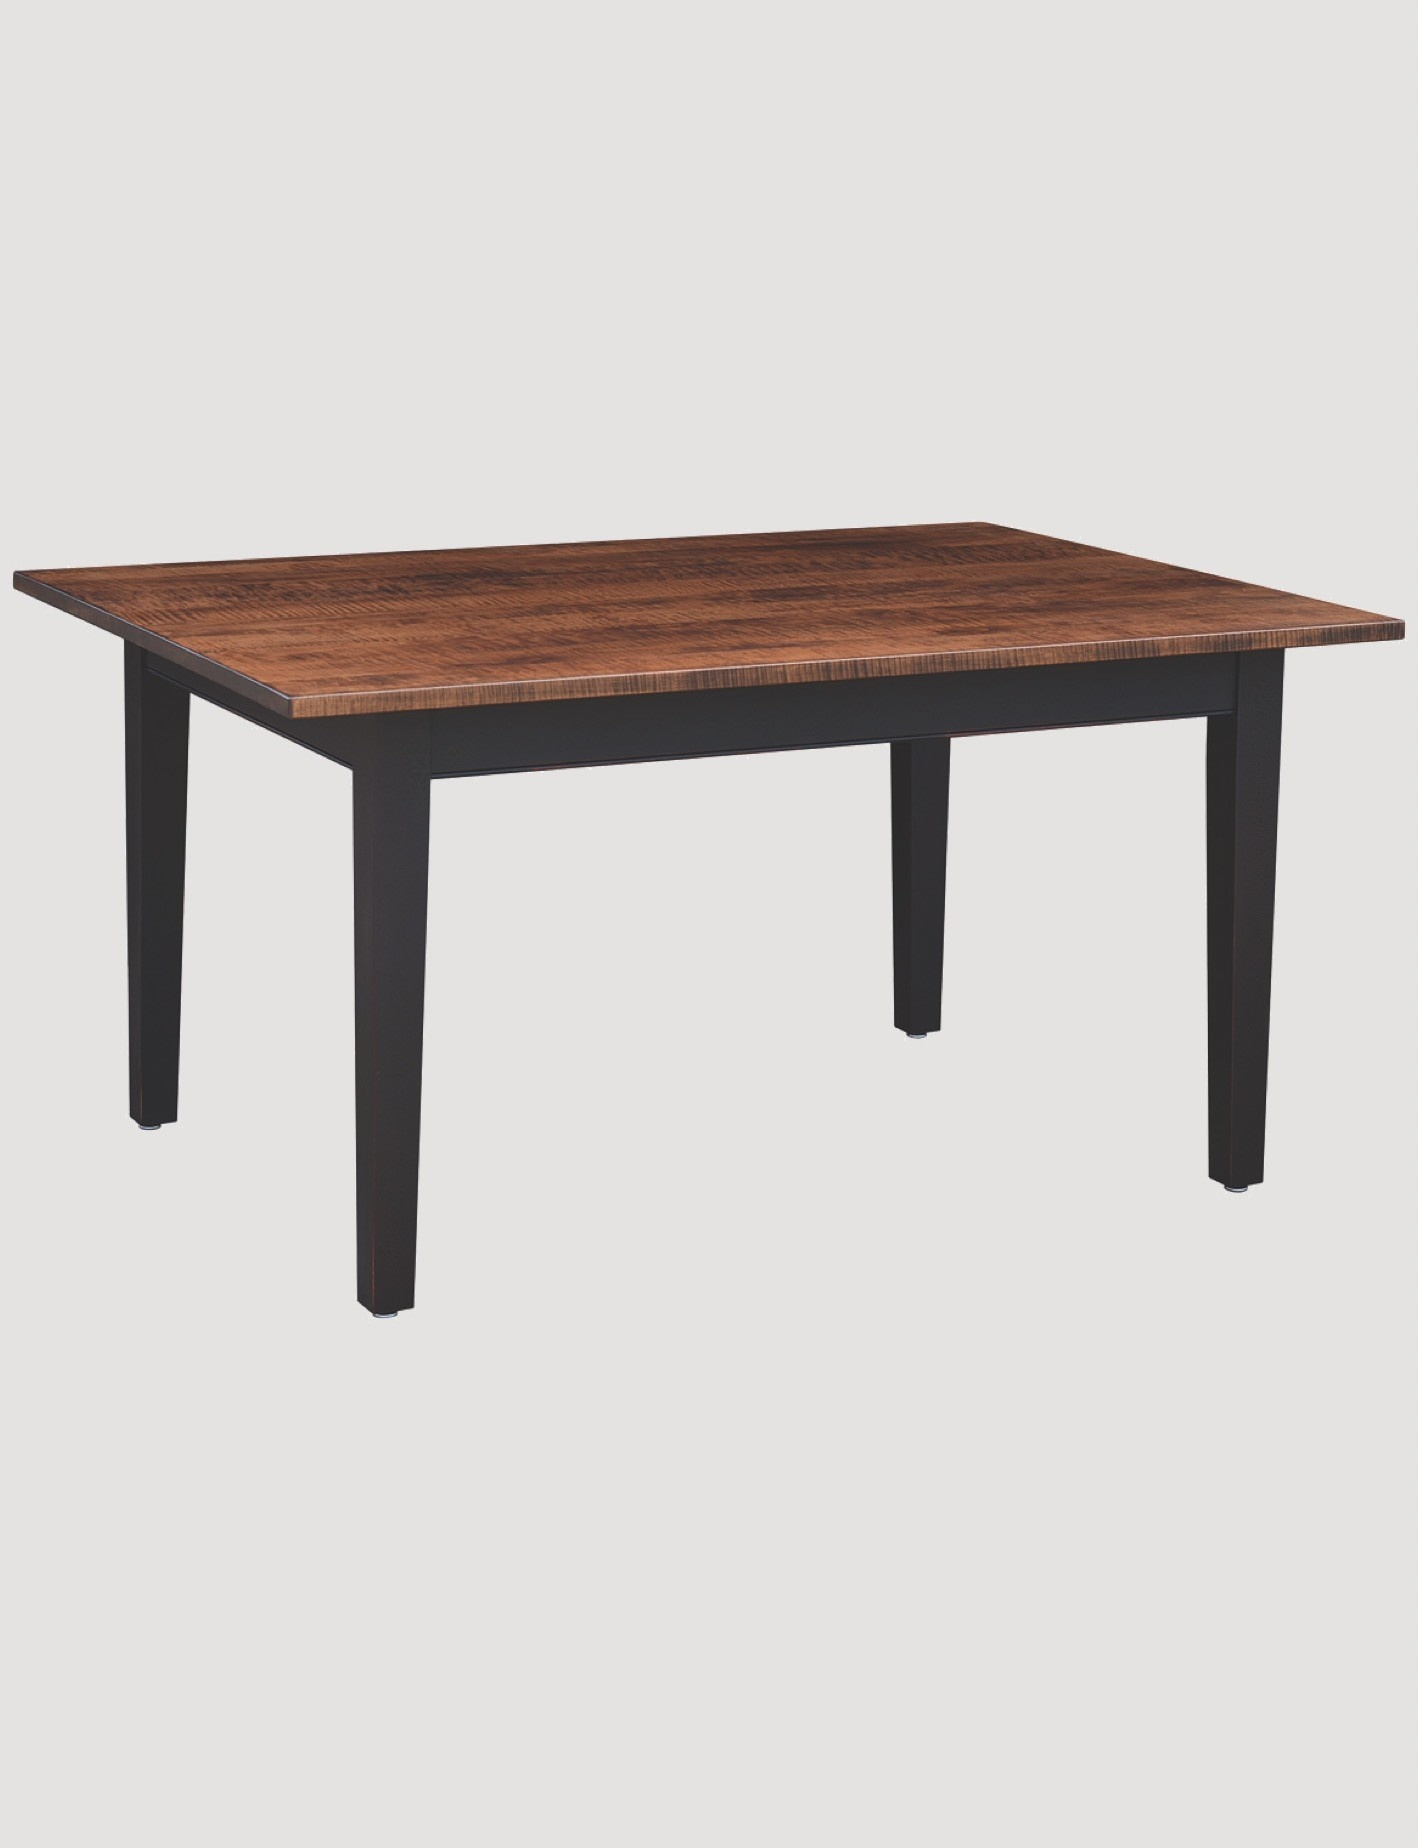 Primitive Designs Farm Tiger Maple Top Dining Table with Black Rubbed Legs